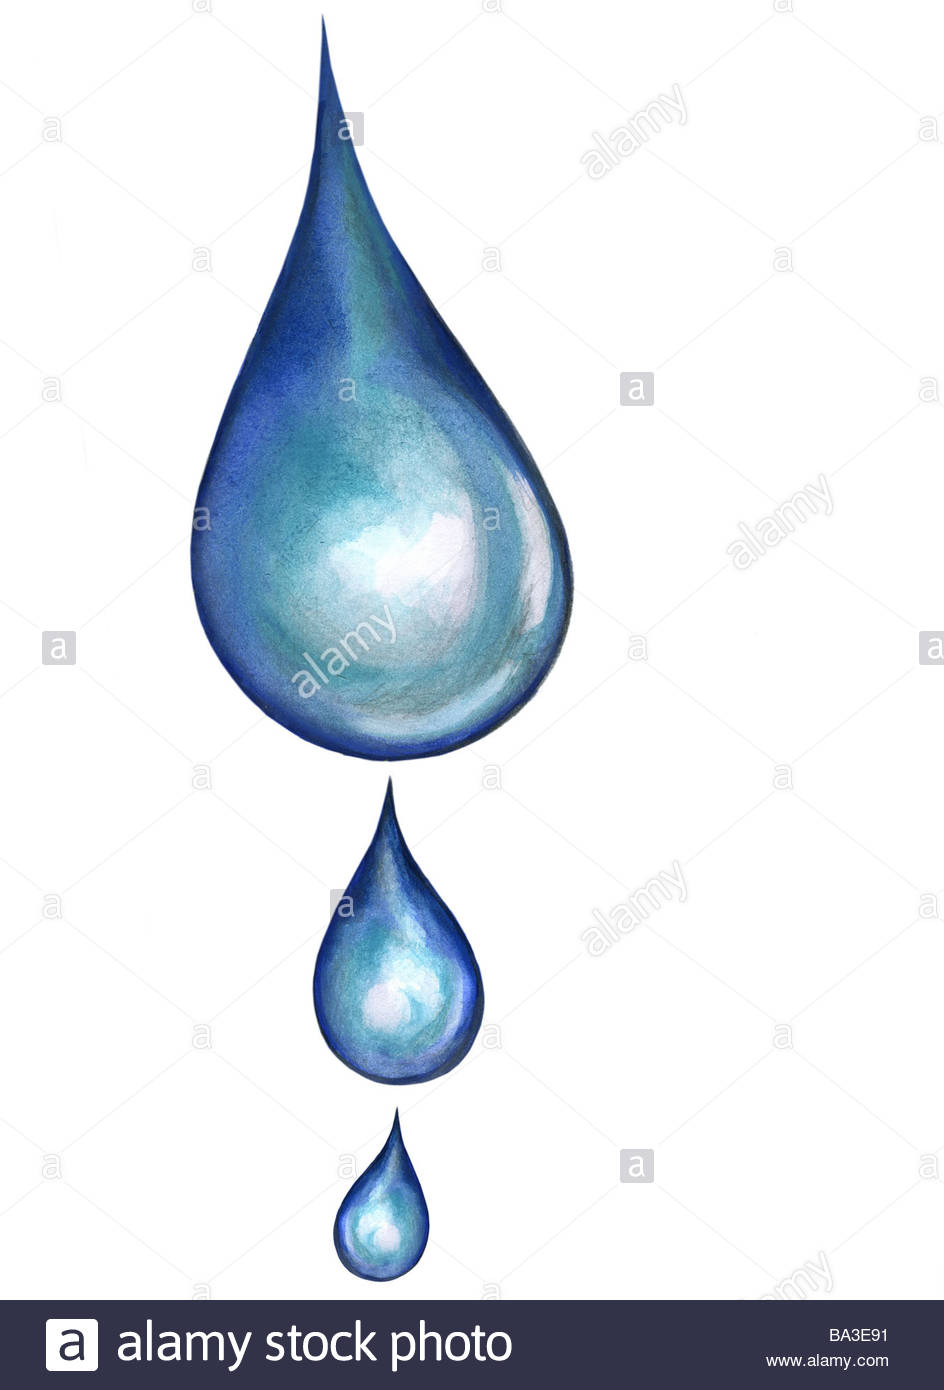 944x1390 Illustration Drops Graphics Drawing Watercolor Wetness Water Drops